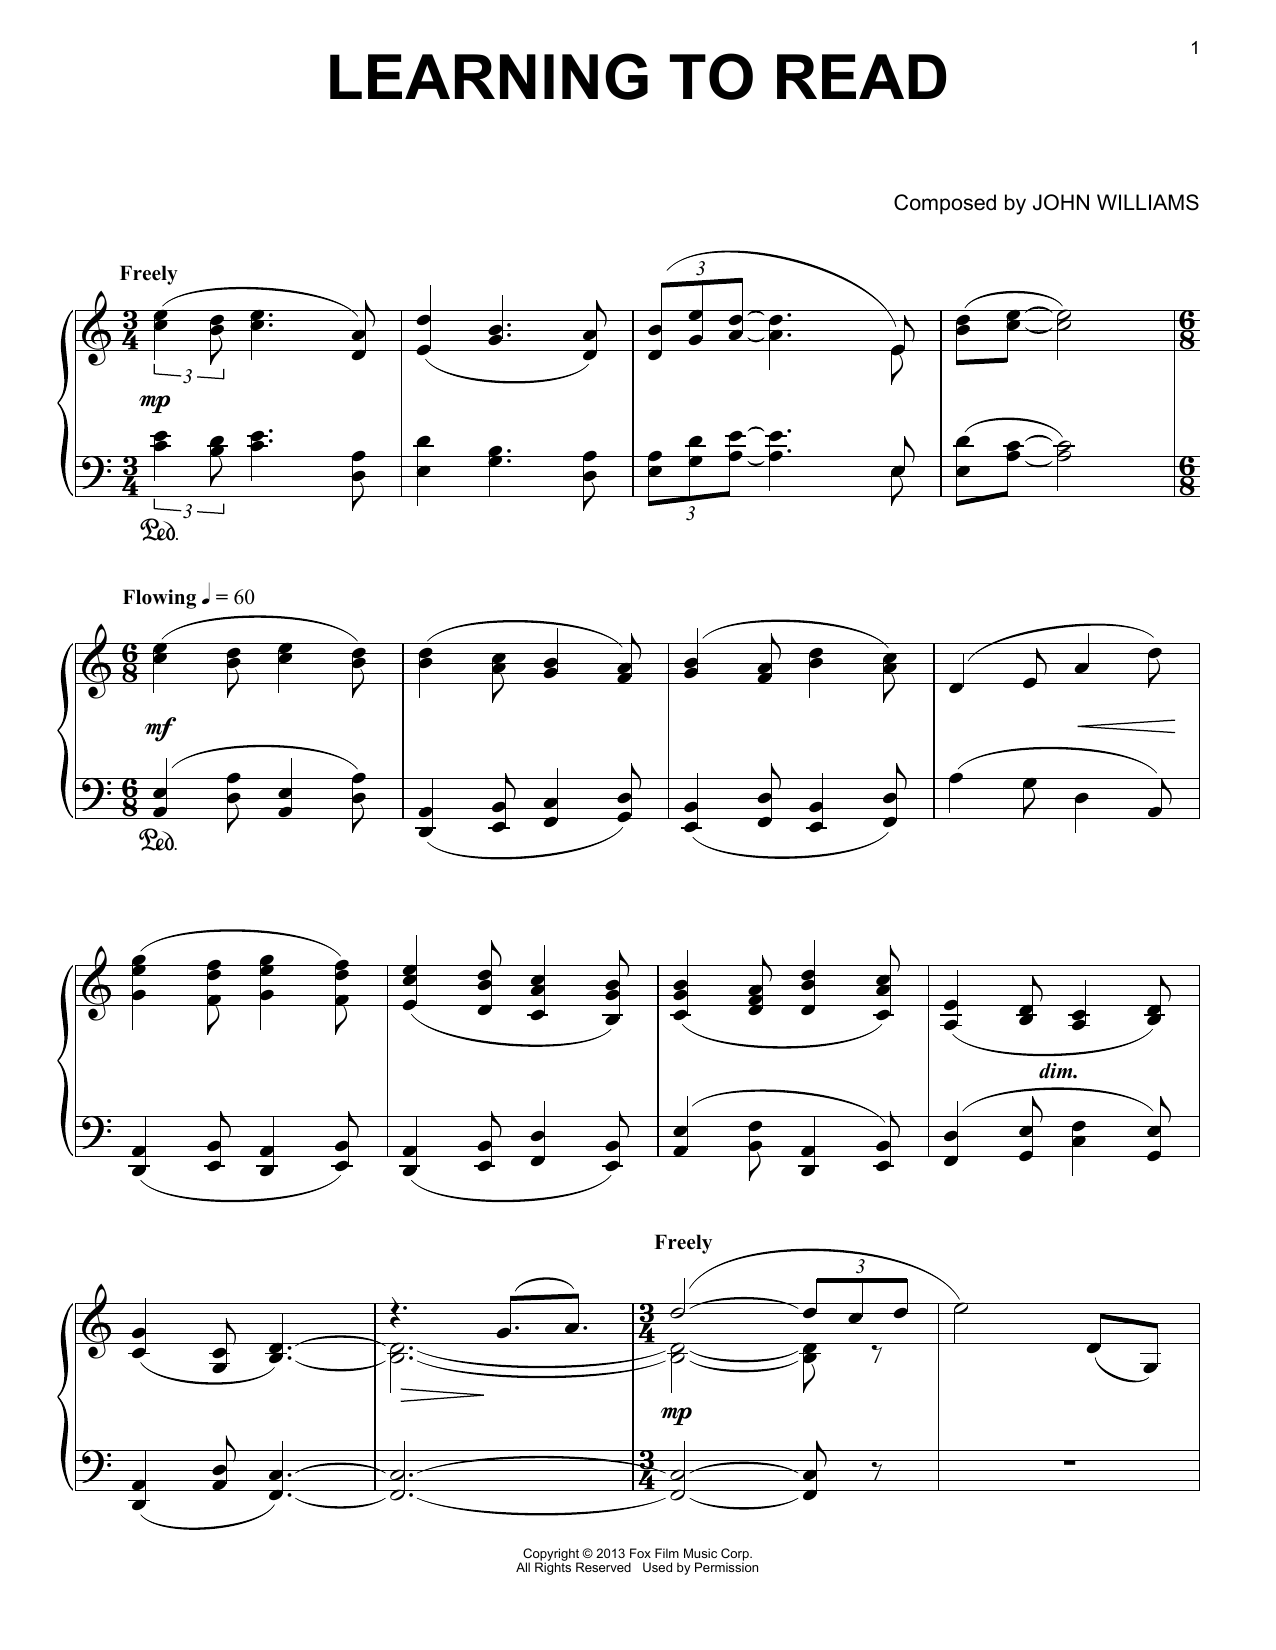 Learning To Read sheet music for piano solo by John Williams